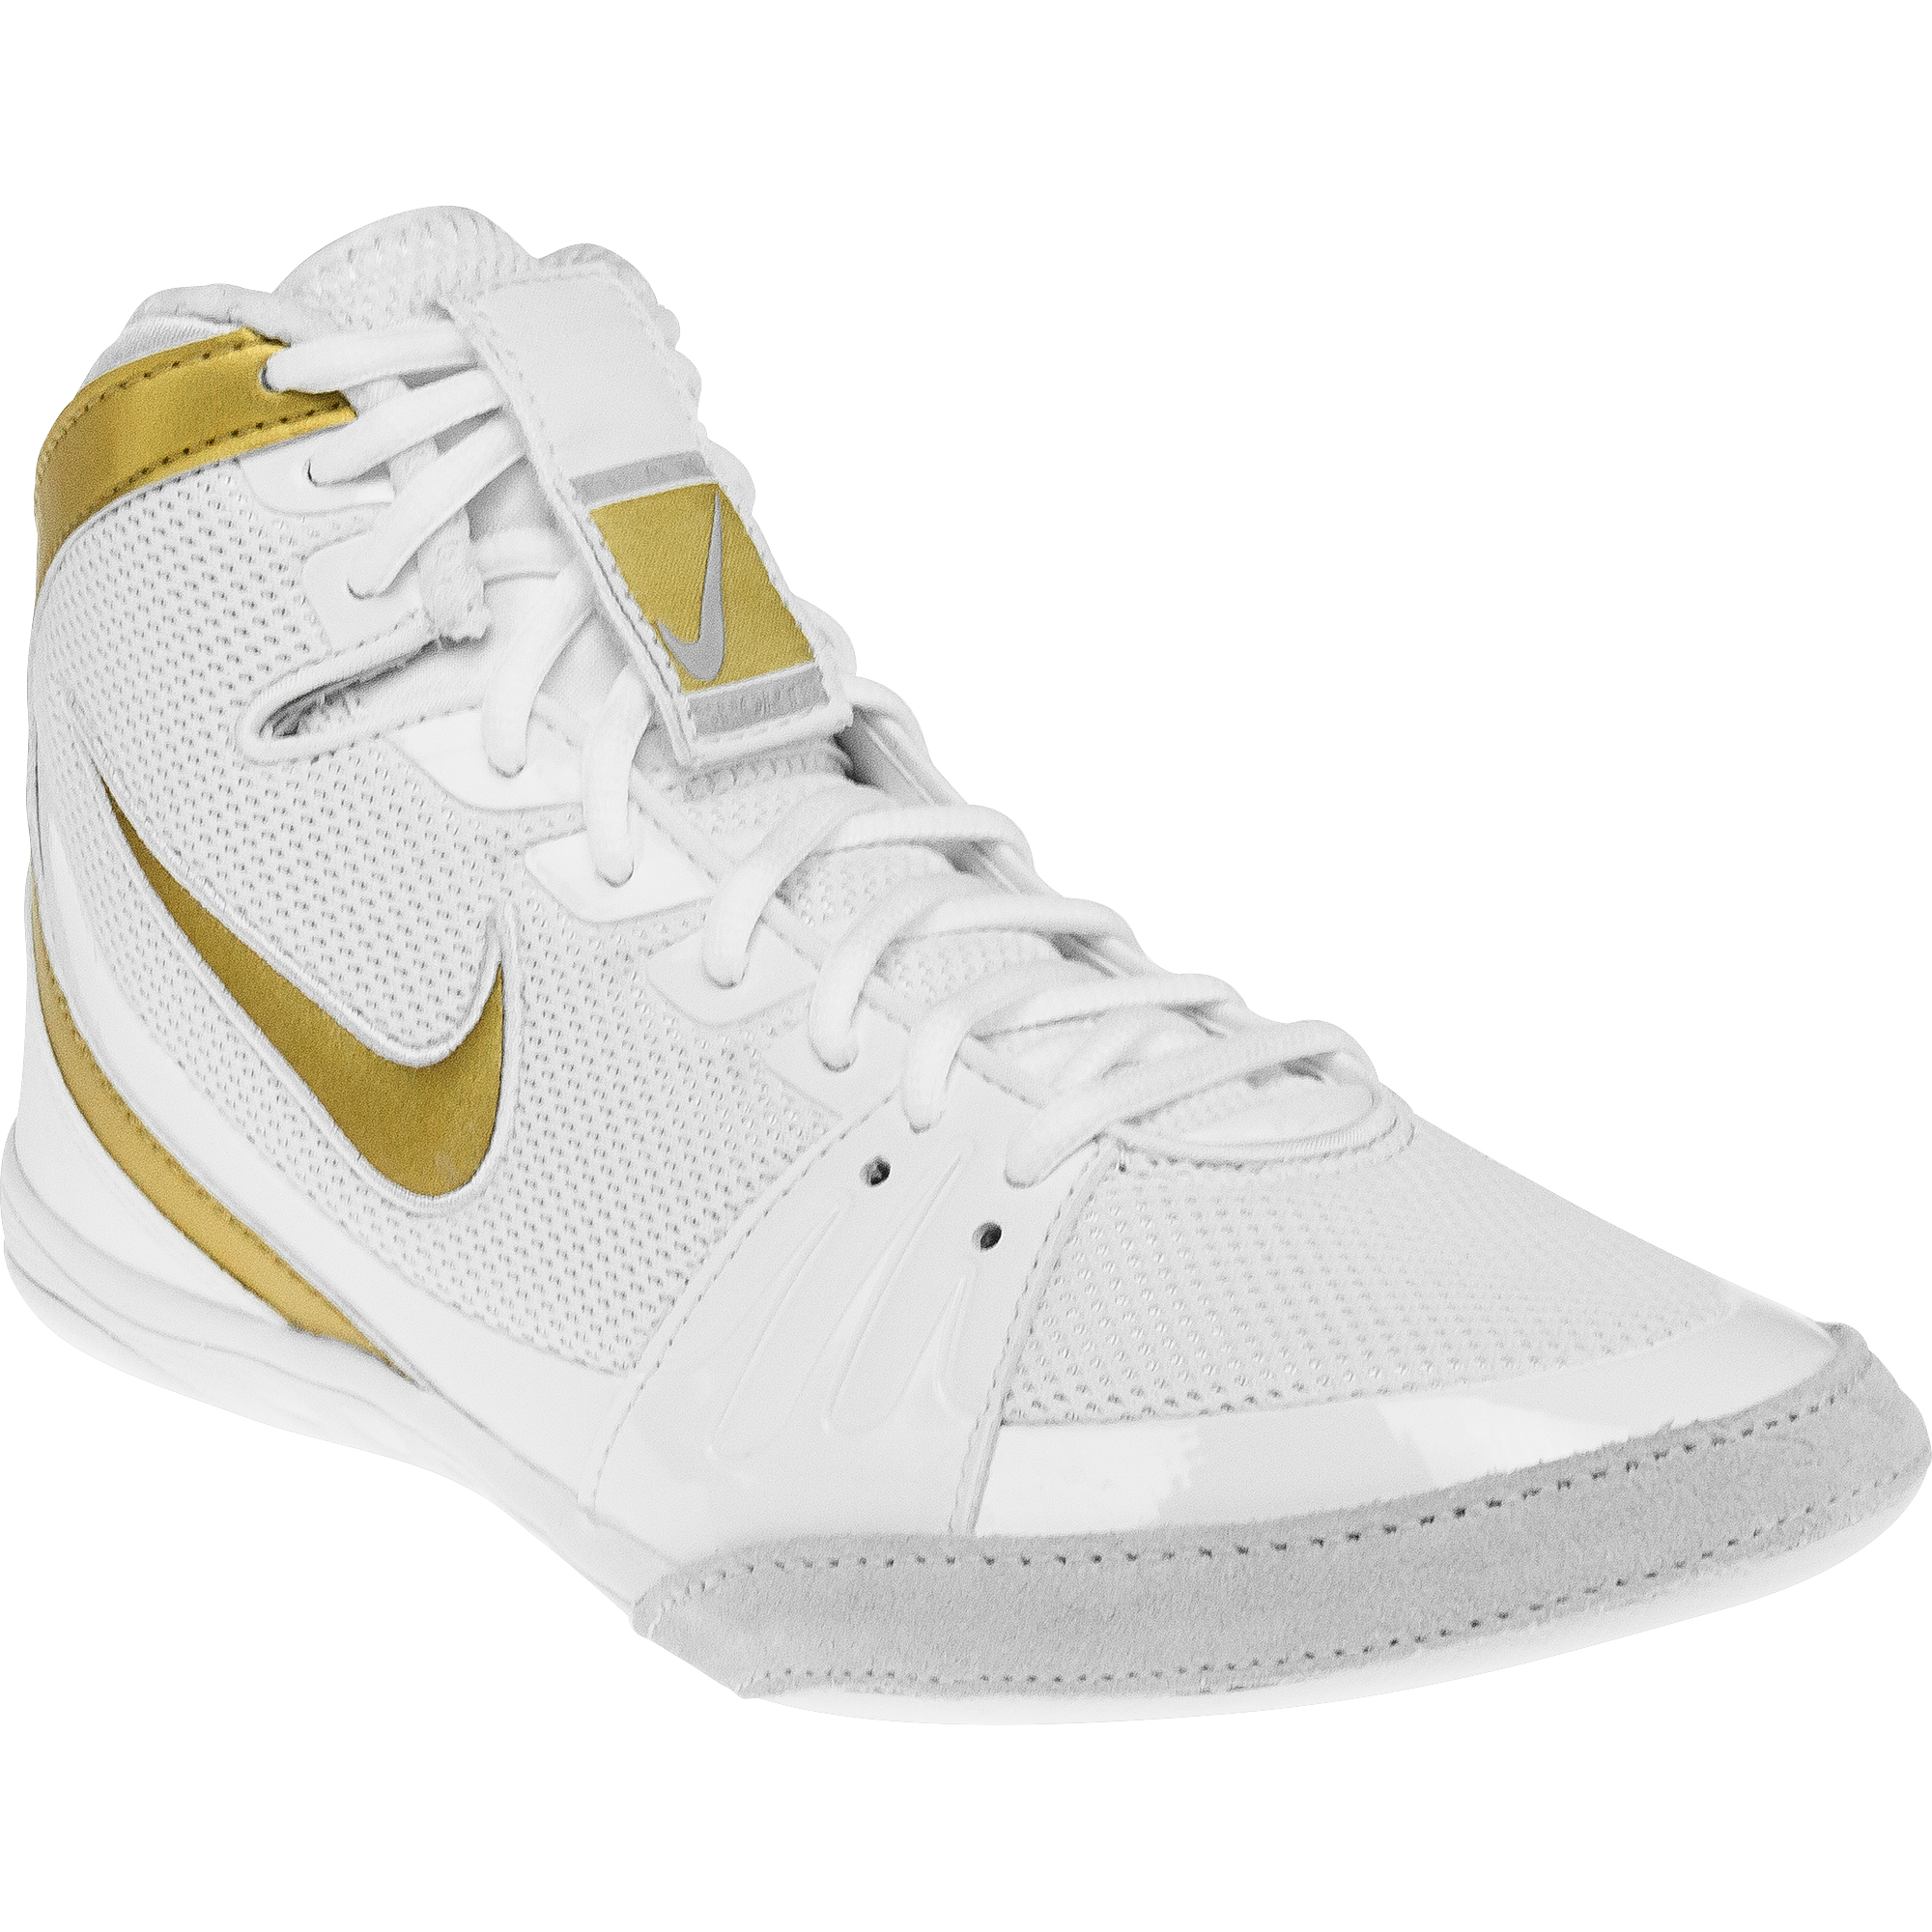 Nike Freek White Gold